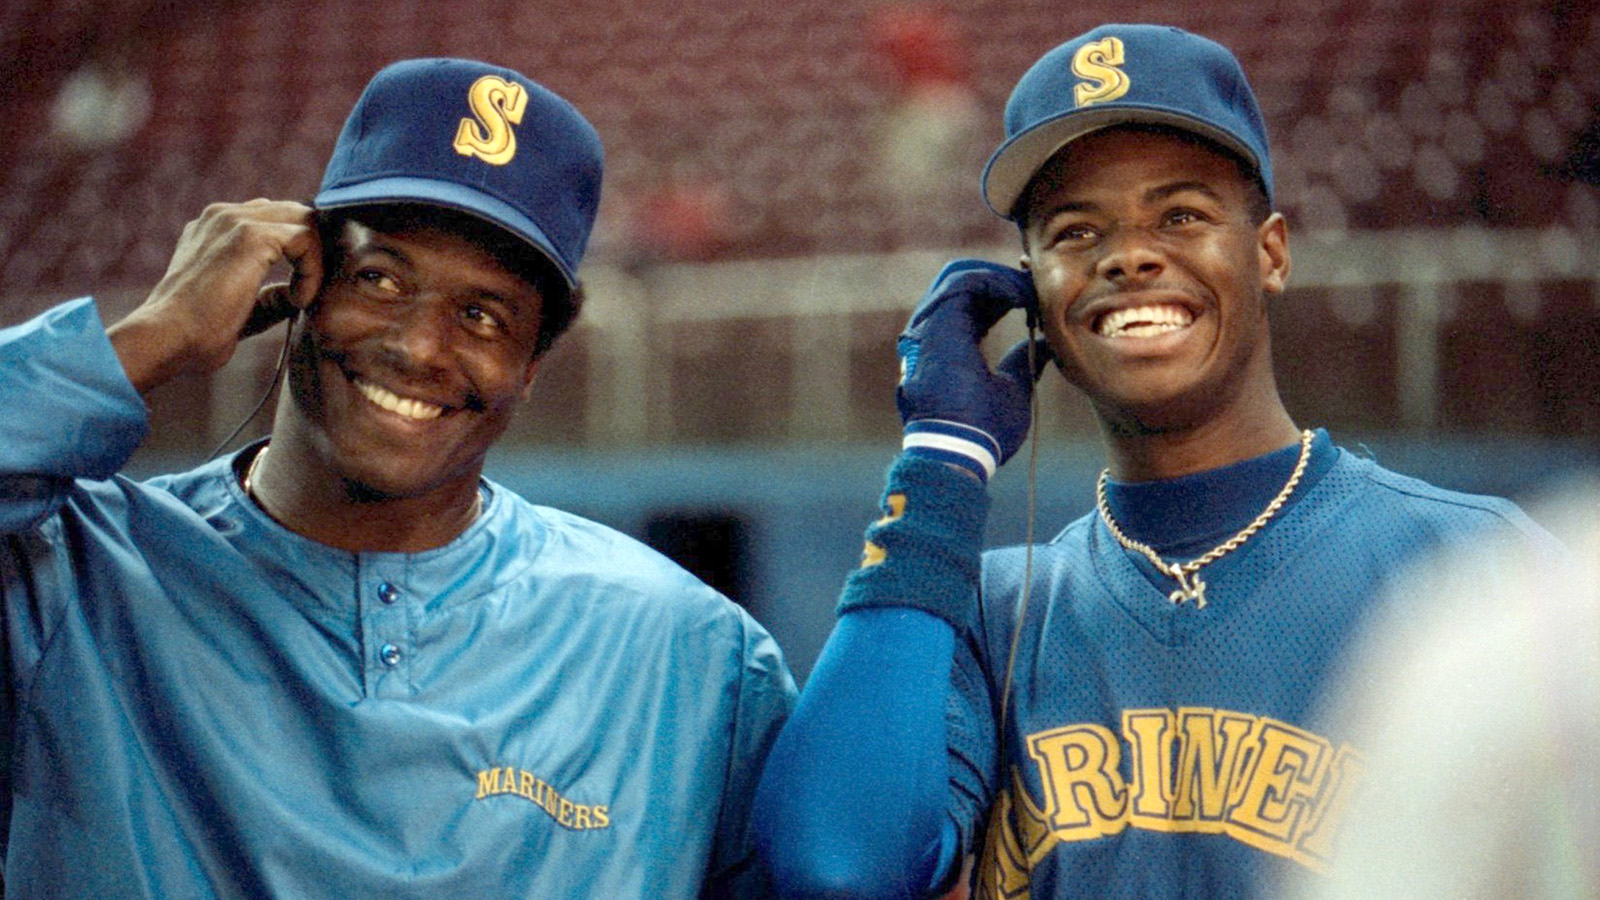 86b41d38cb How cool would it be if we got a Ken Griffey Sr and Jr style father-son  teammate combo in about 7ish years?